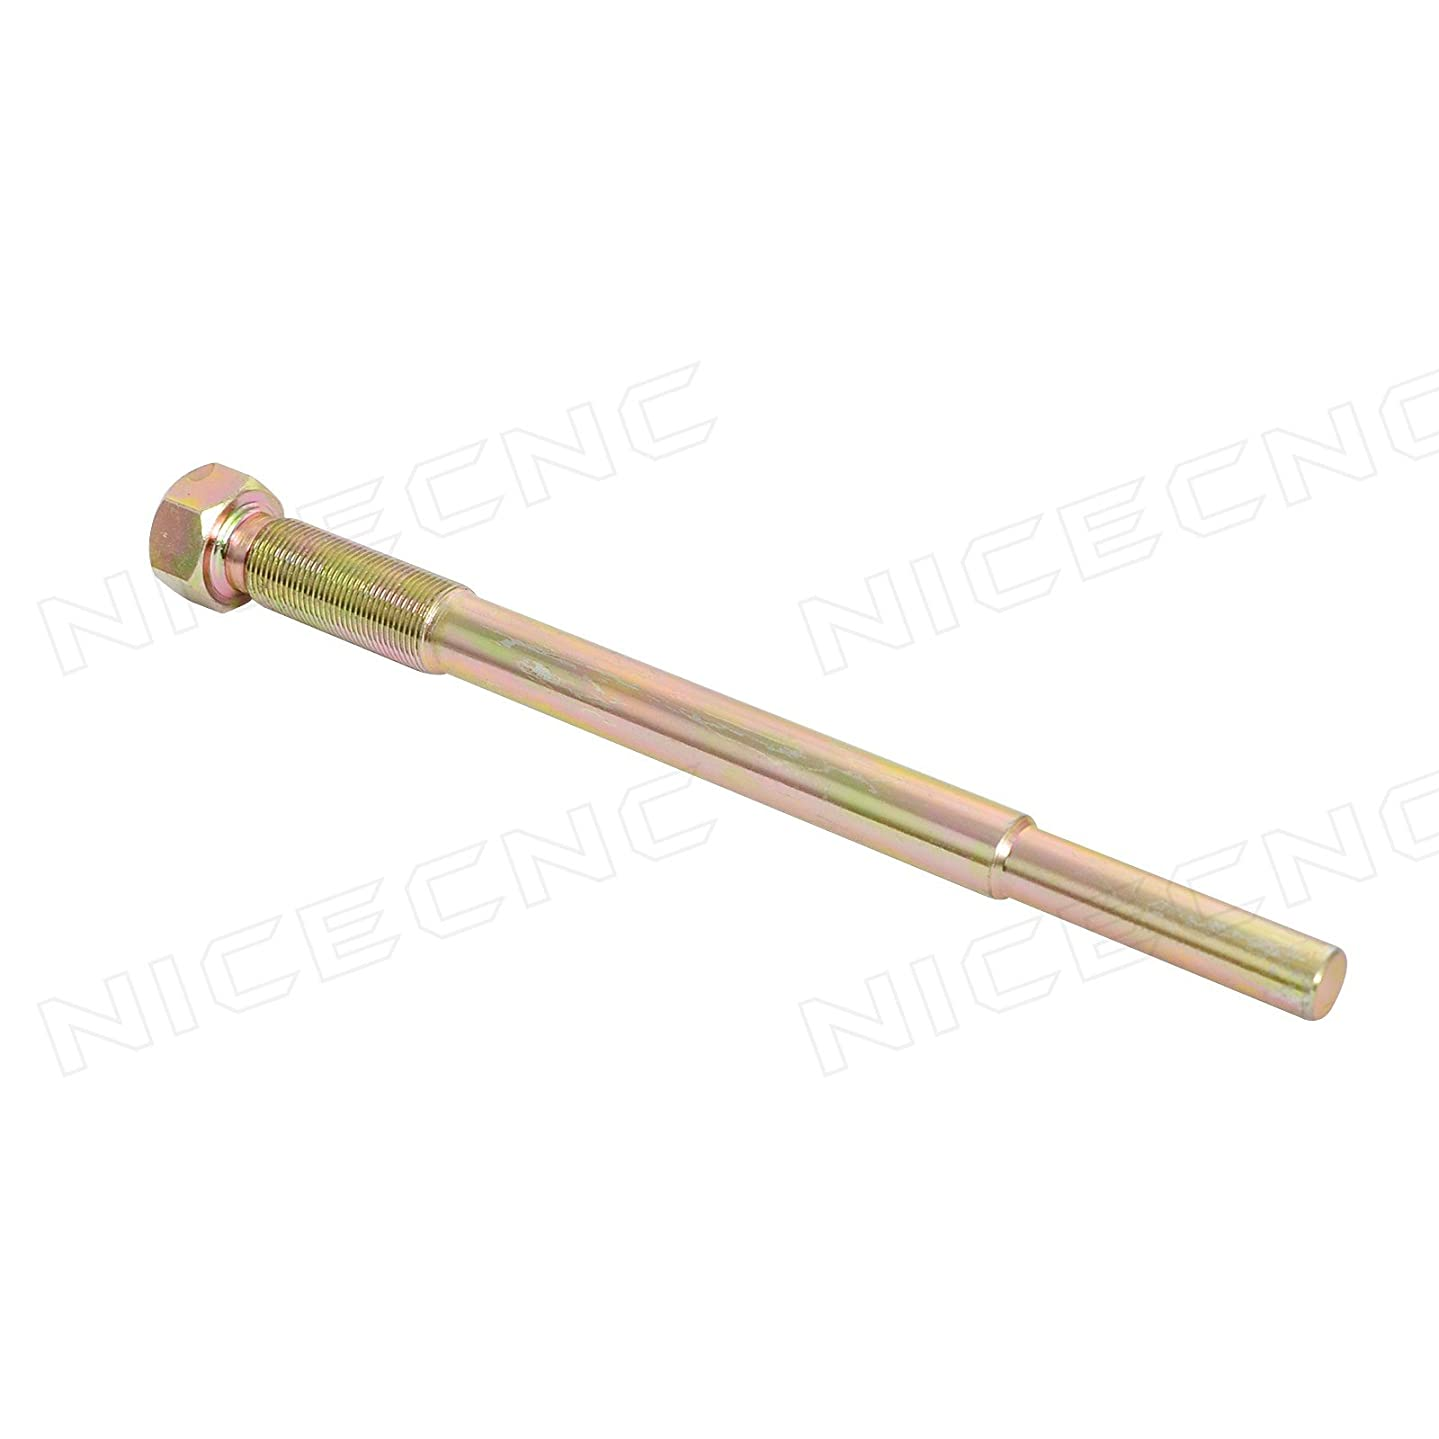 NICECNC Golf Cart Metal Clutch Puller Tool for Y-amaha G1 G2 G9 G11 G14 G16 G22 1979-2006,Replaces 90890-01876-00